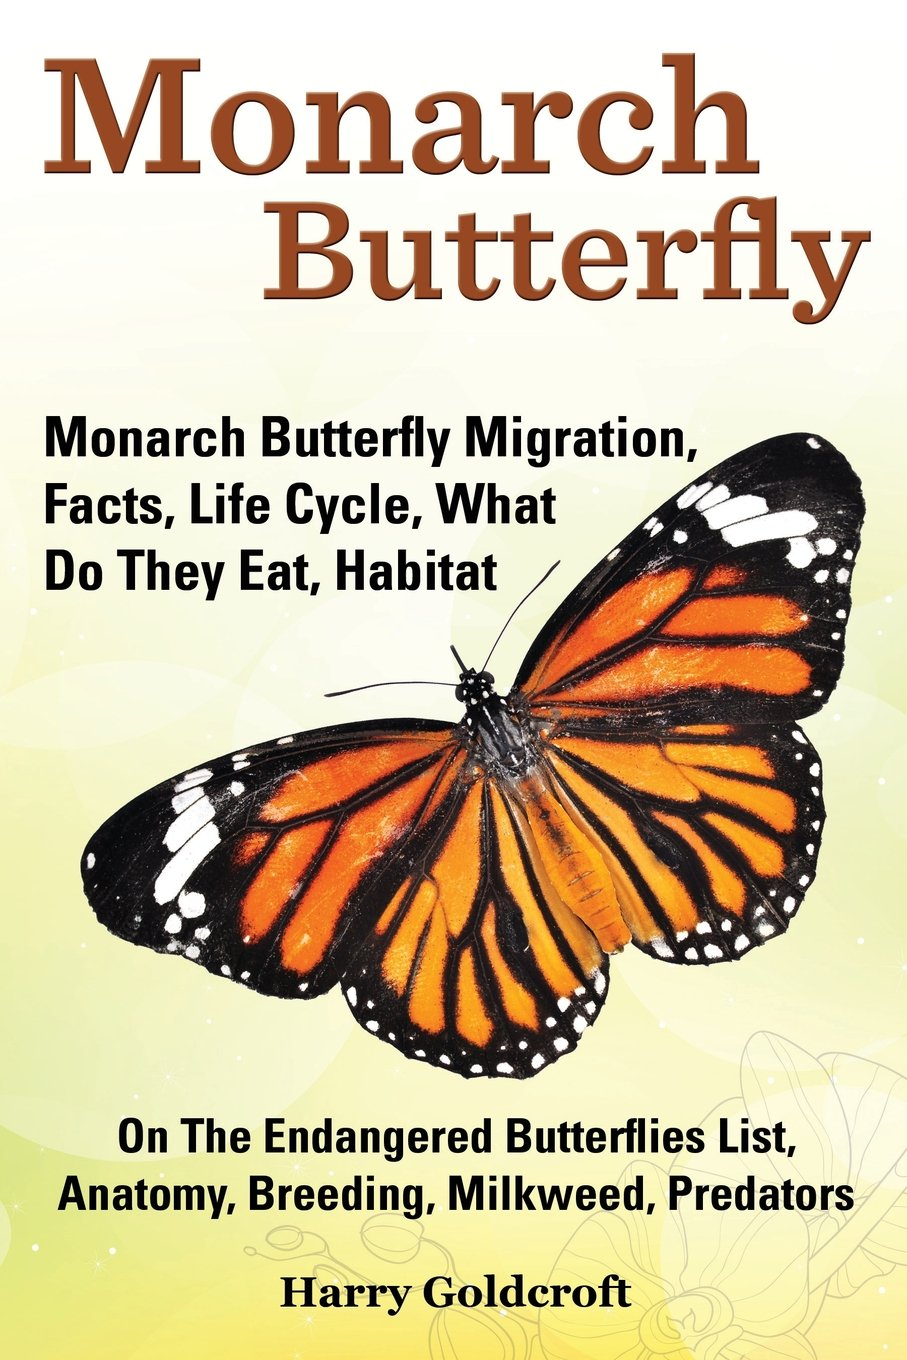 Amazon.in: Buy Monarch Butterfly, Monarch Butterfly Migration, Facts ...